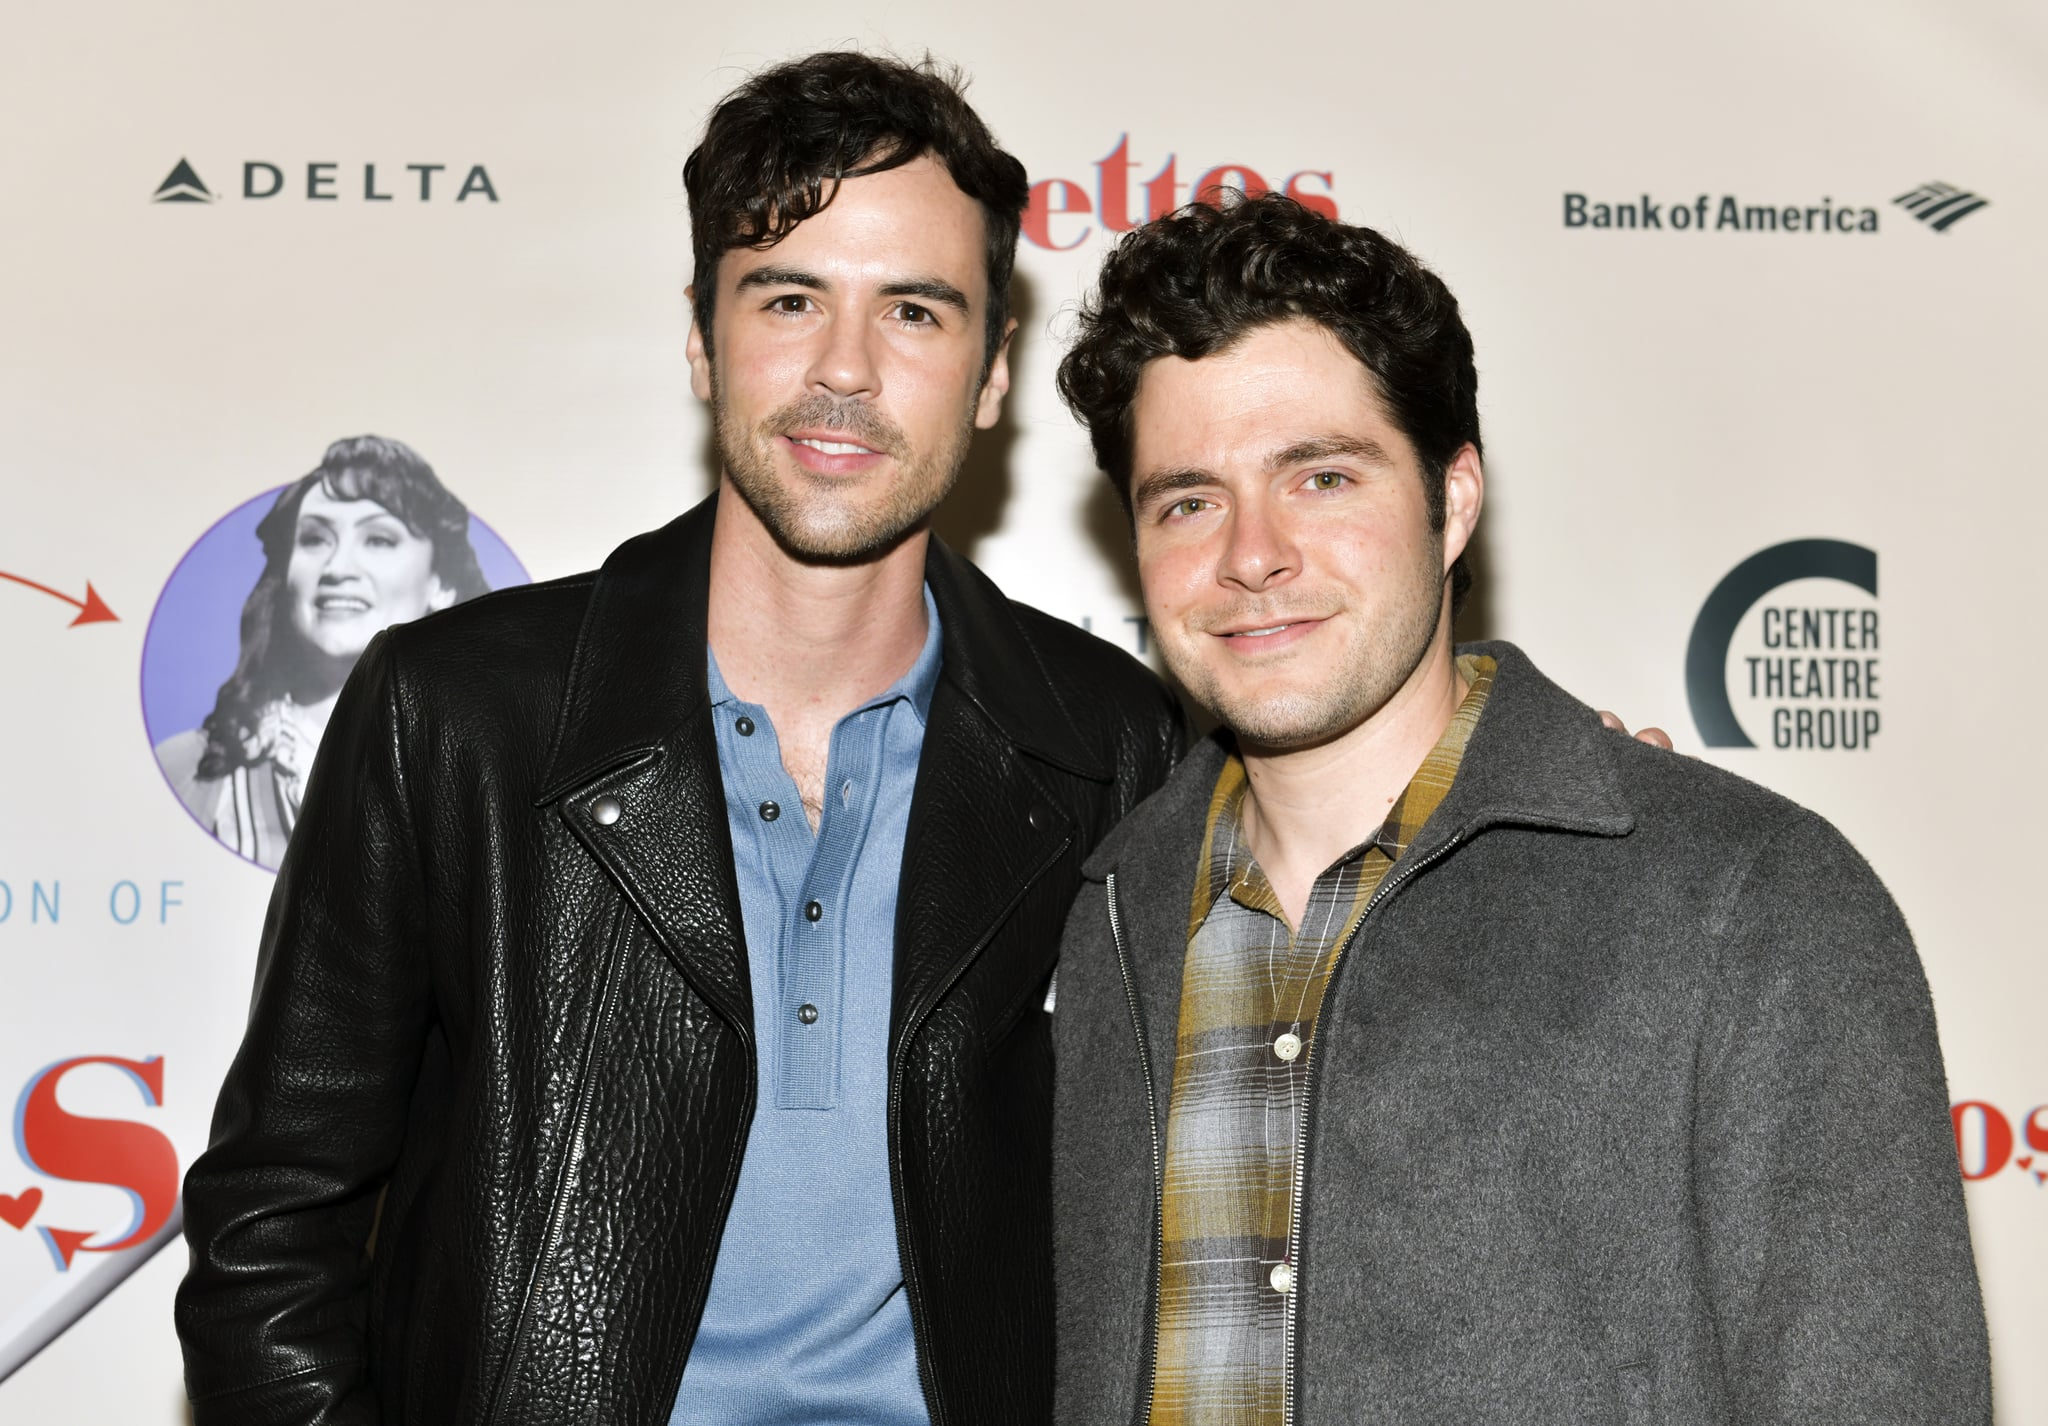 LOS ANGELES, CALIFORNIA - APRIL 17: Blake Lee (L) and Ben Lewis attend the opening of Center Theatre Group's